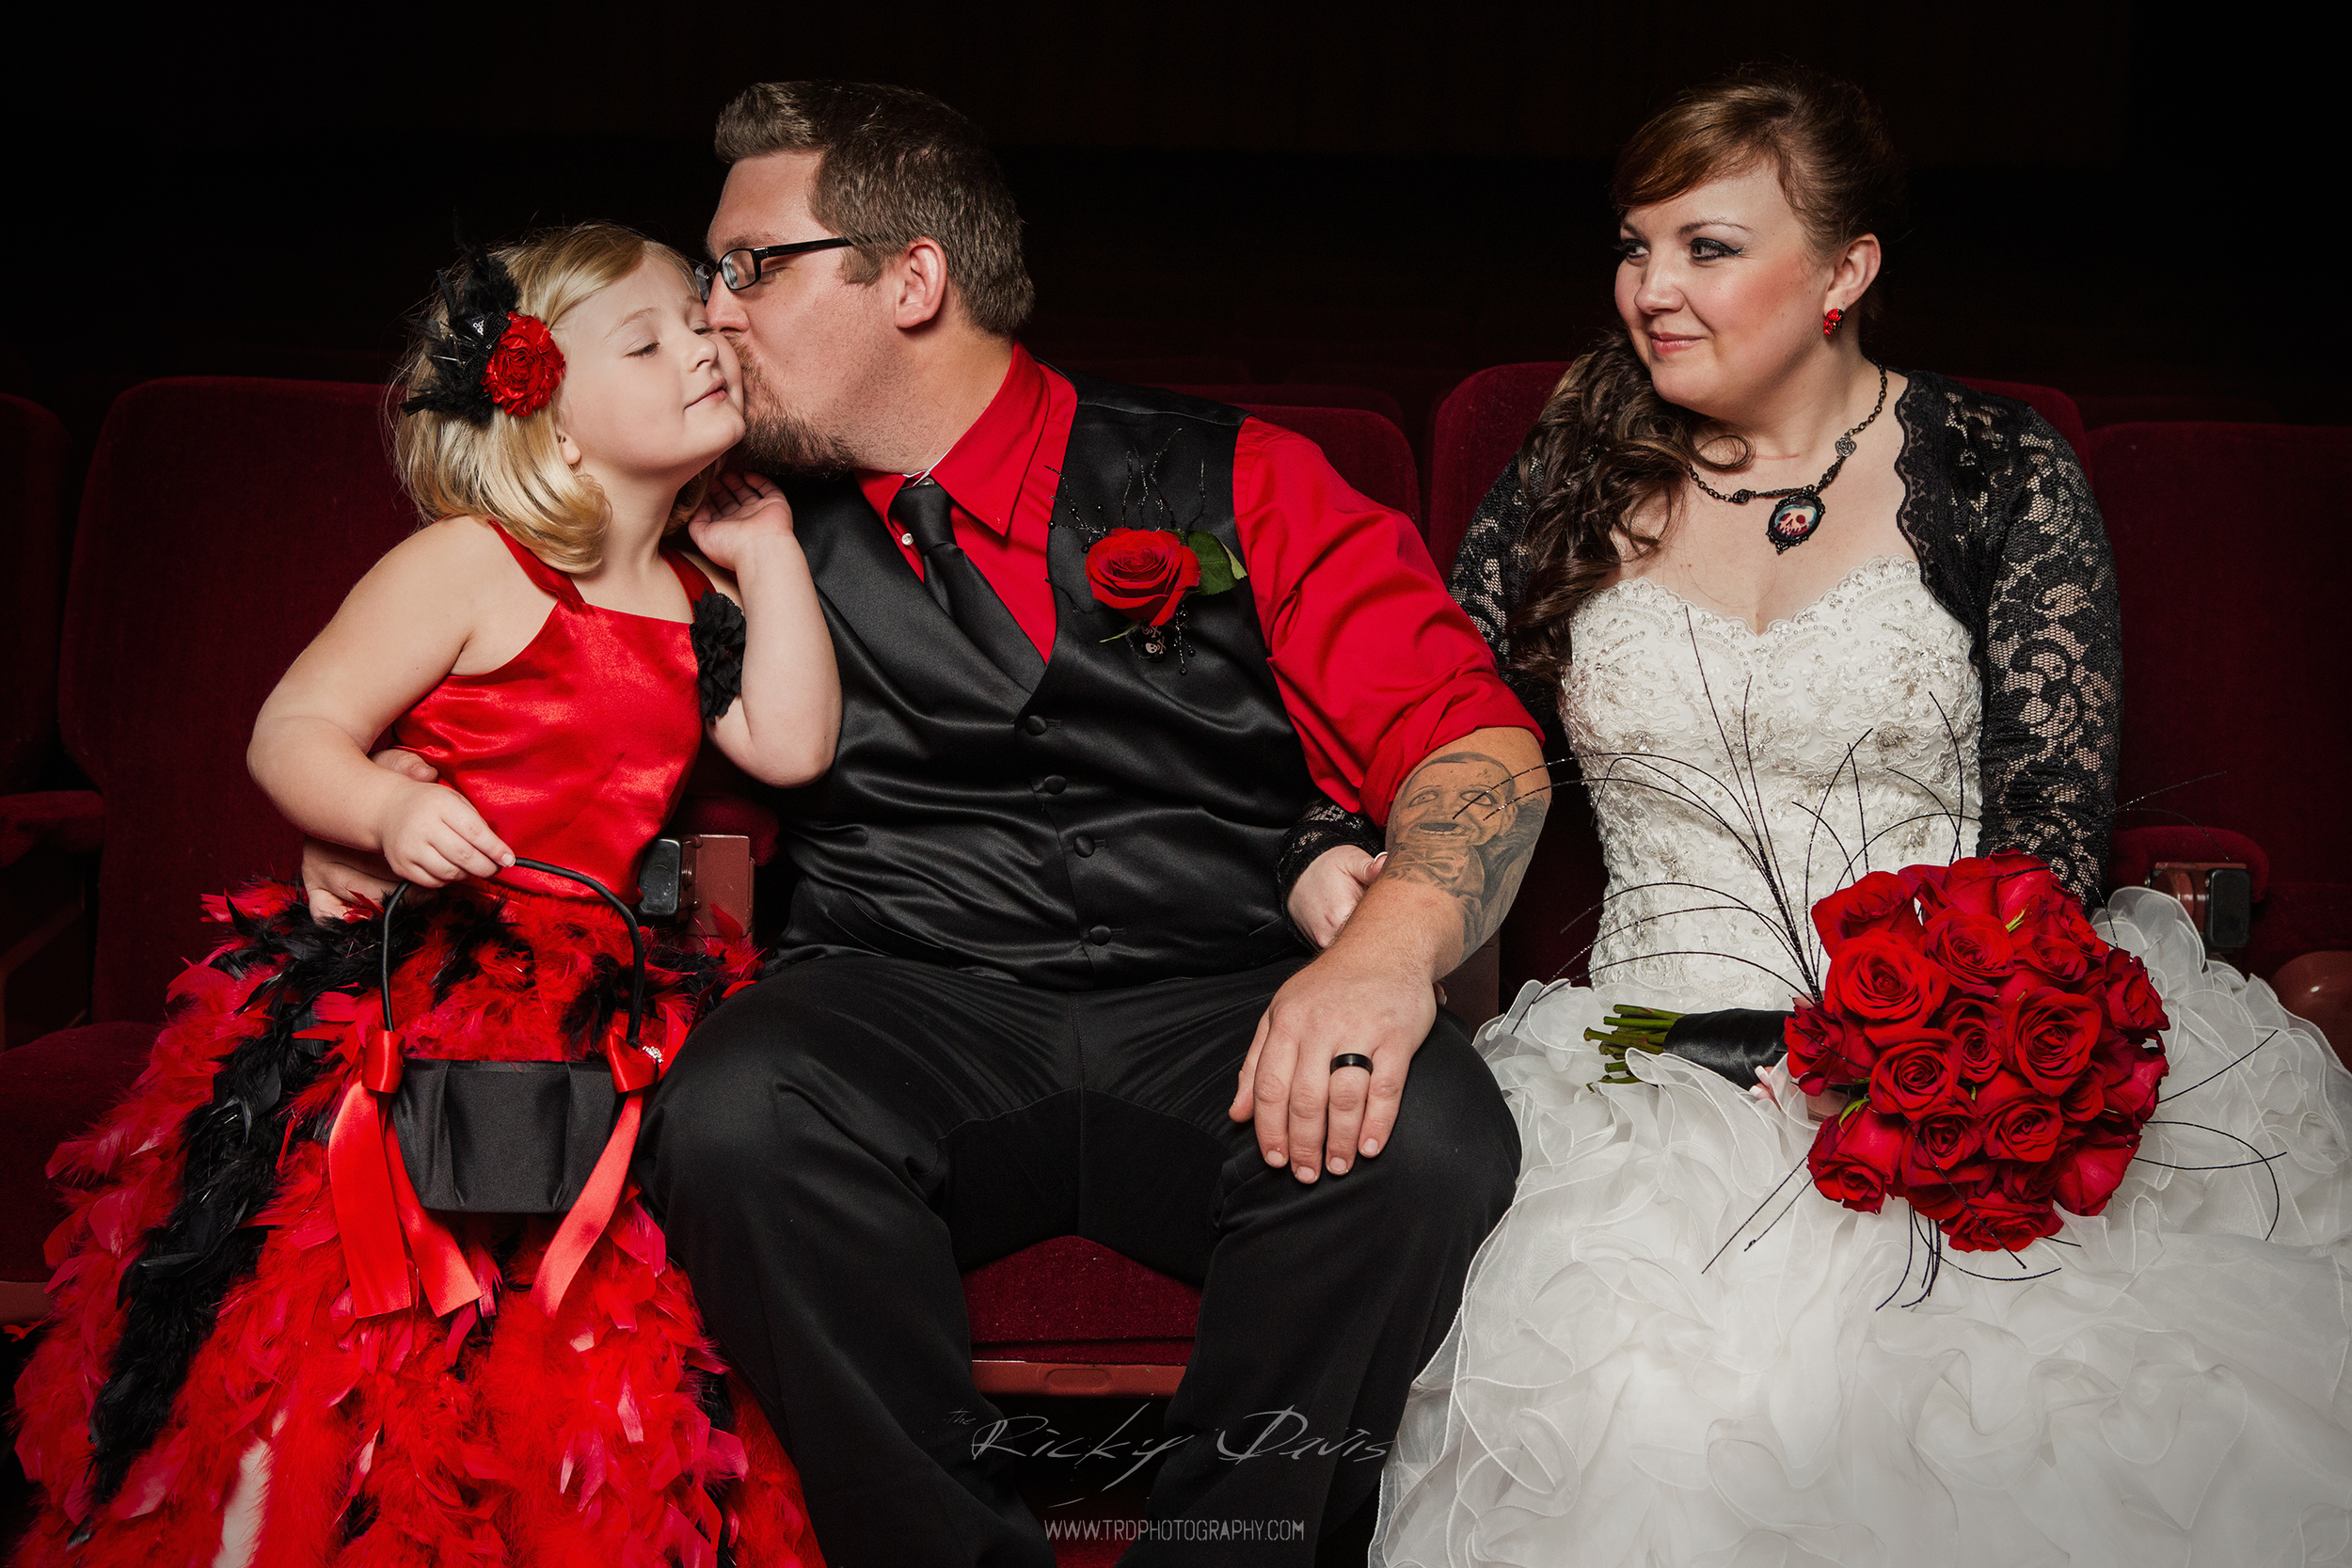 Chattanooga Choo-Choo Wedding - Mary & Dean - TRD Photography